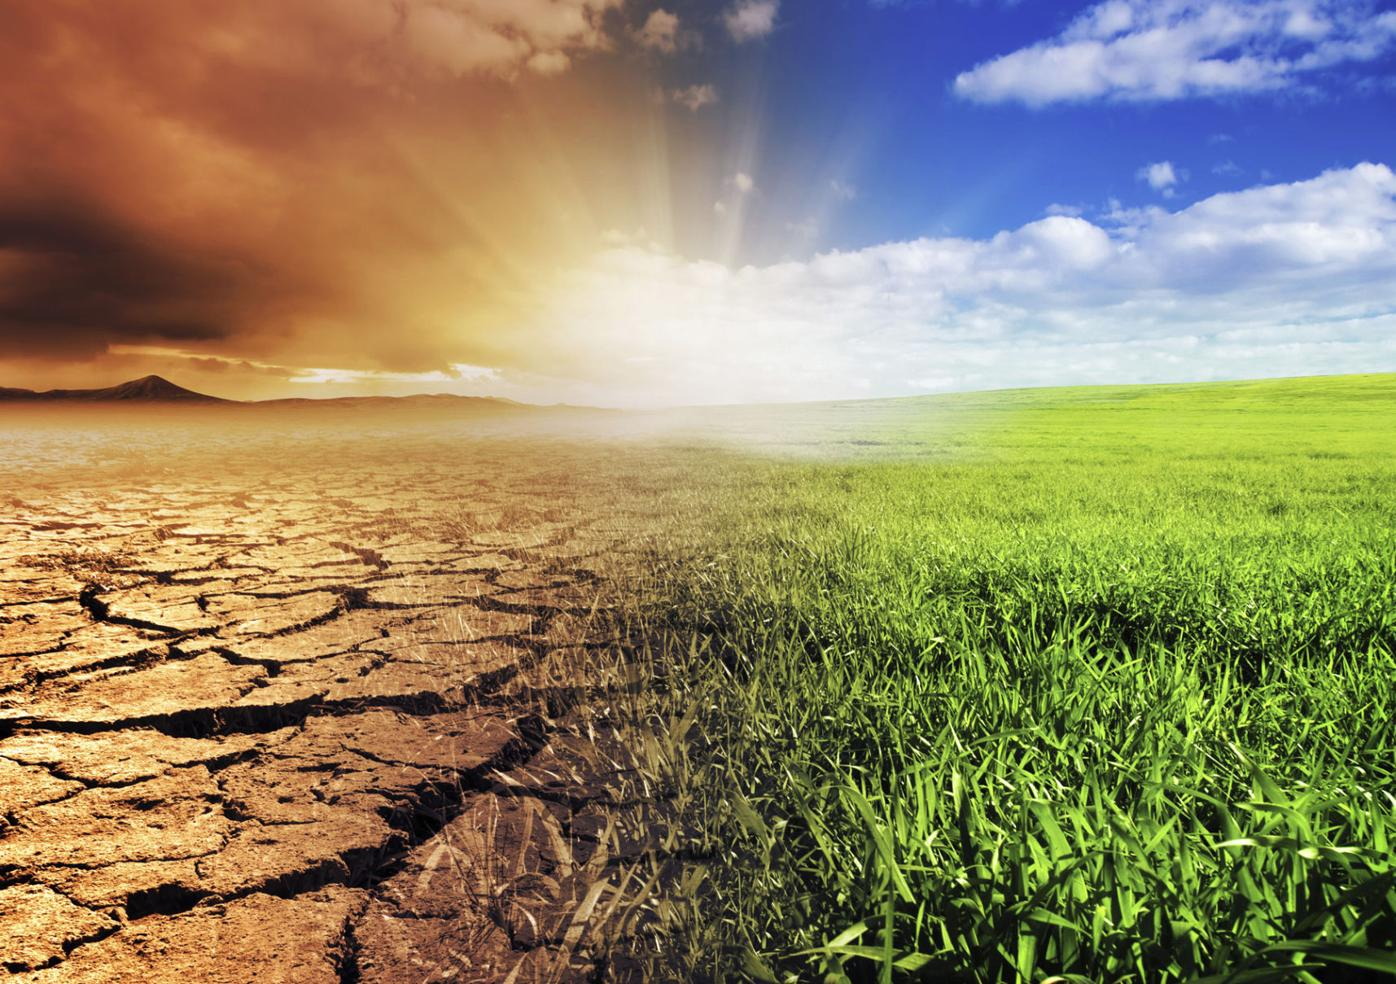 Gregory Lynch: Geoengineering examines the possibility of intentionally altering our global climate